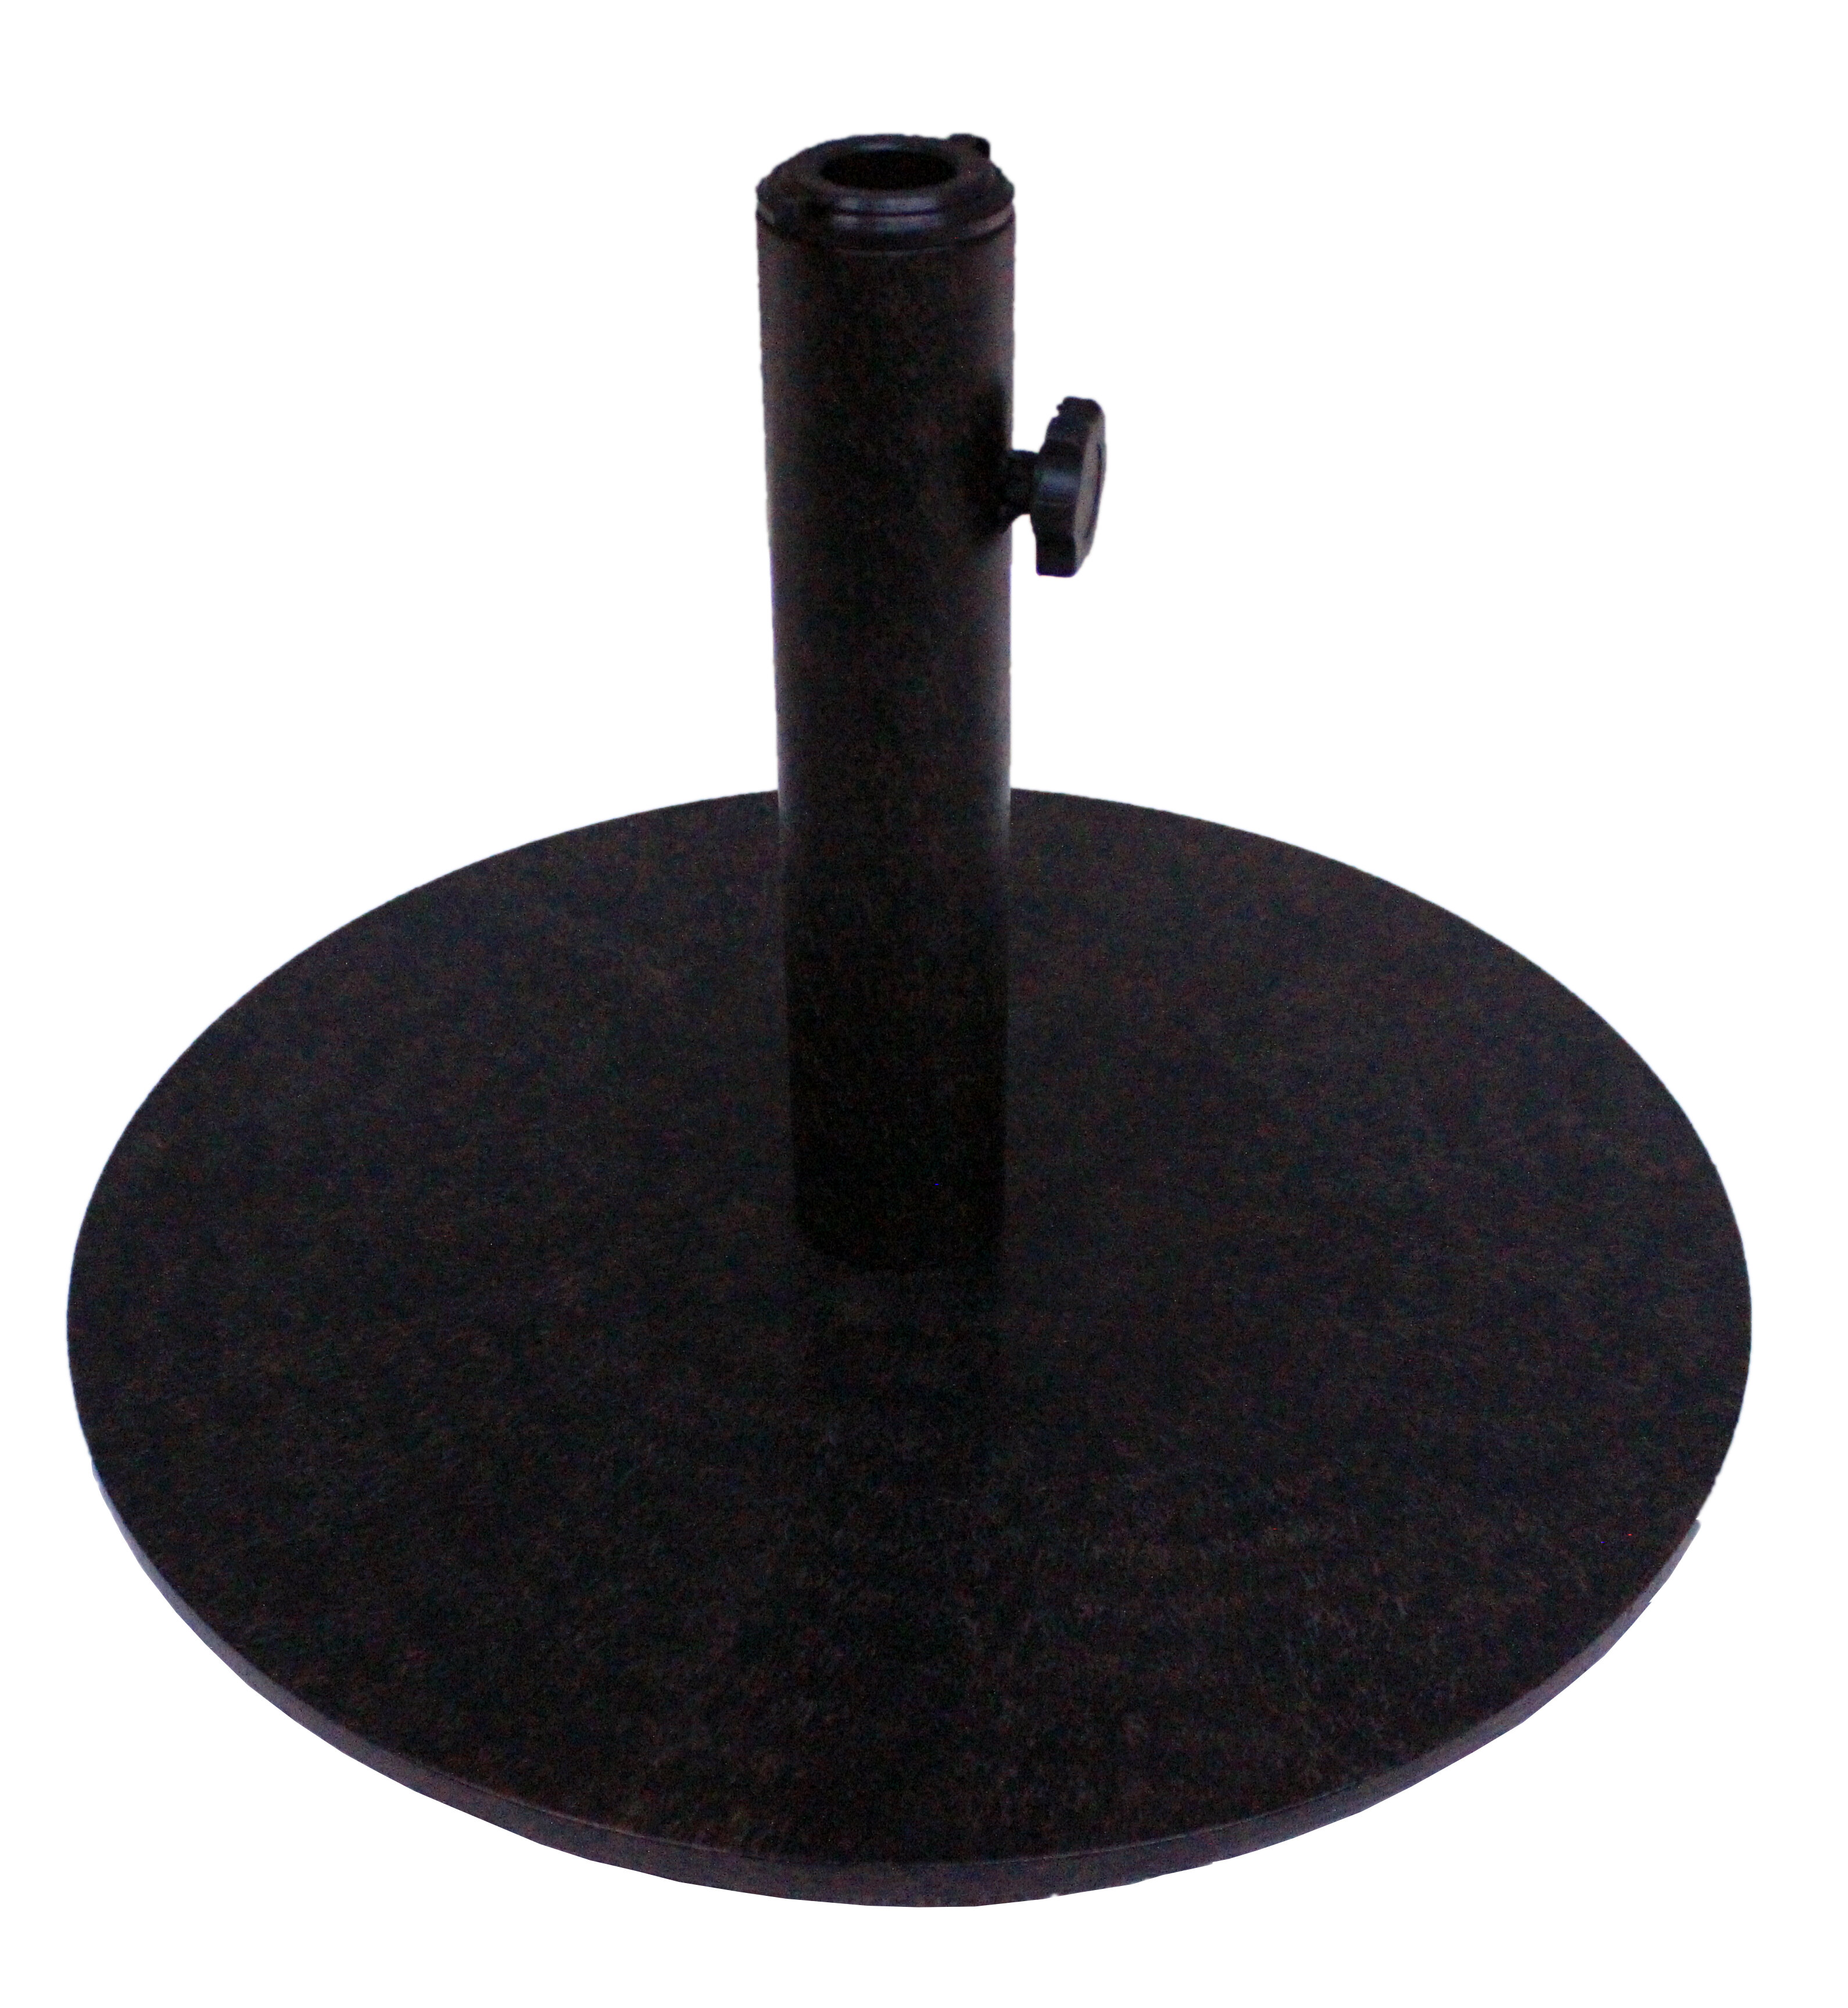 california outdoor designs flat cast iron free standing umbrella Free Standing Umbrella Stand